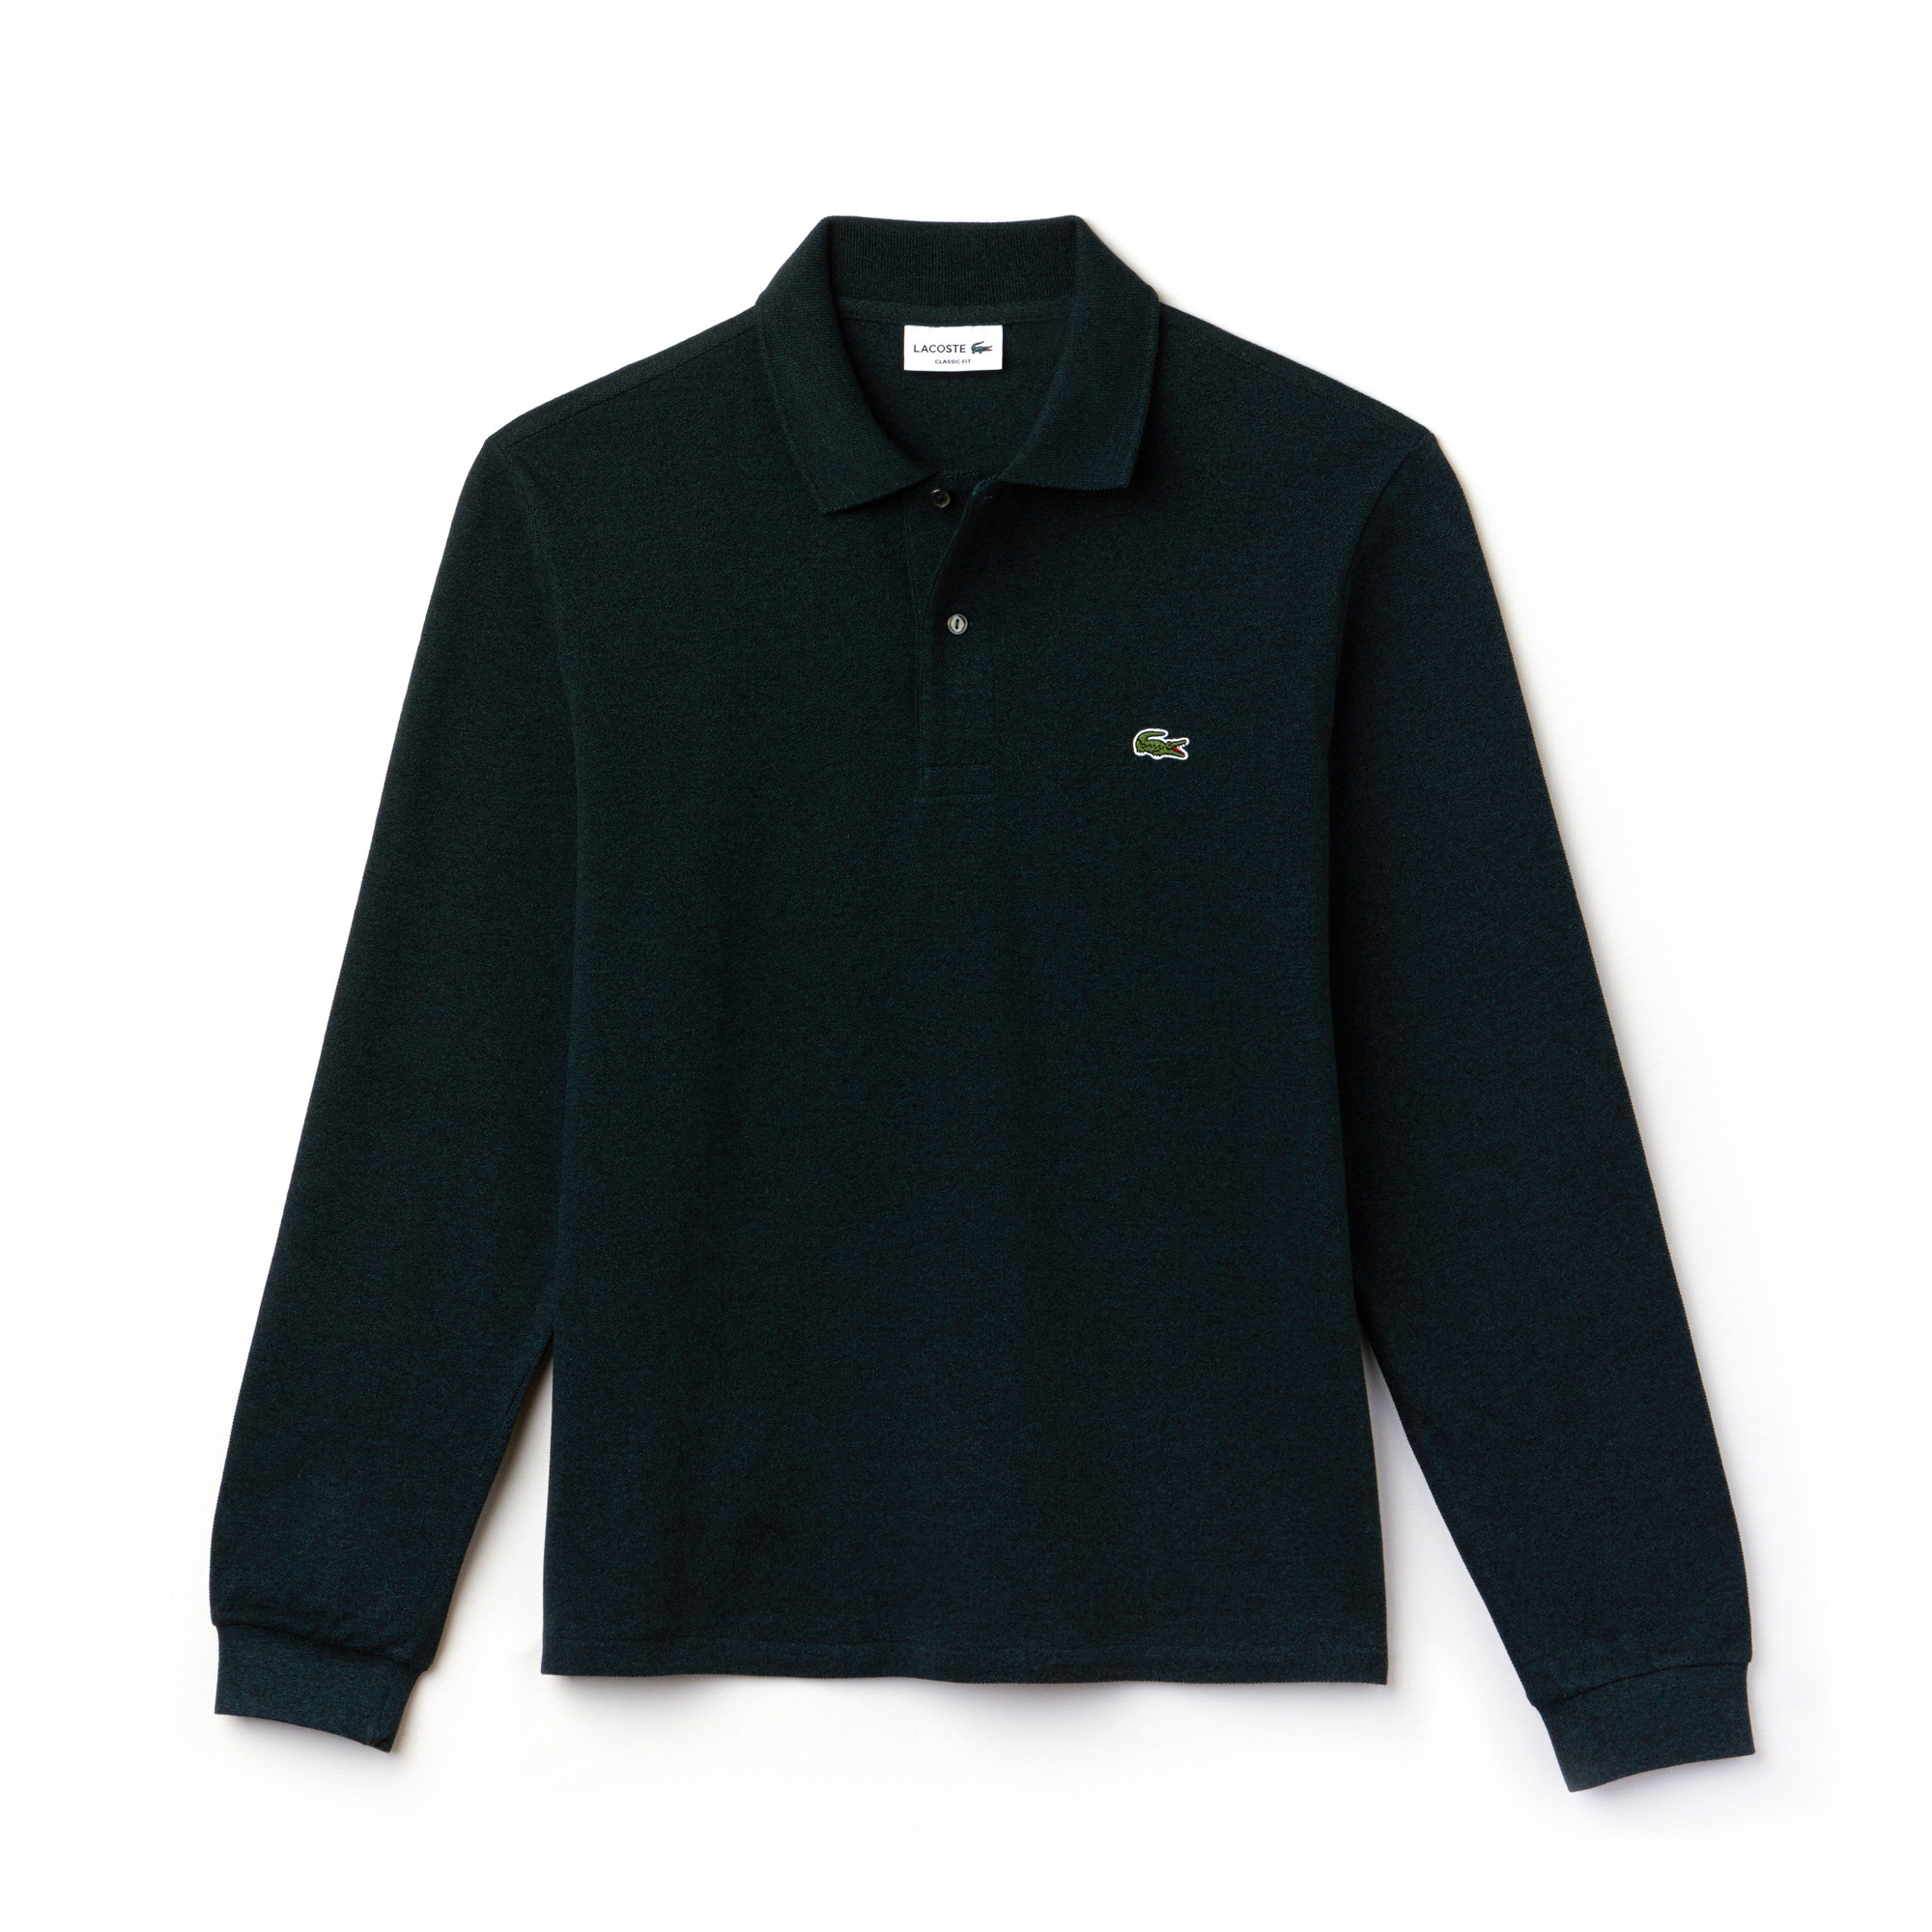 Lacoste Lacoste Classic Fit Long-Sleeve Polo Shirt İn Marl Petit Piqué